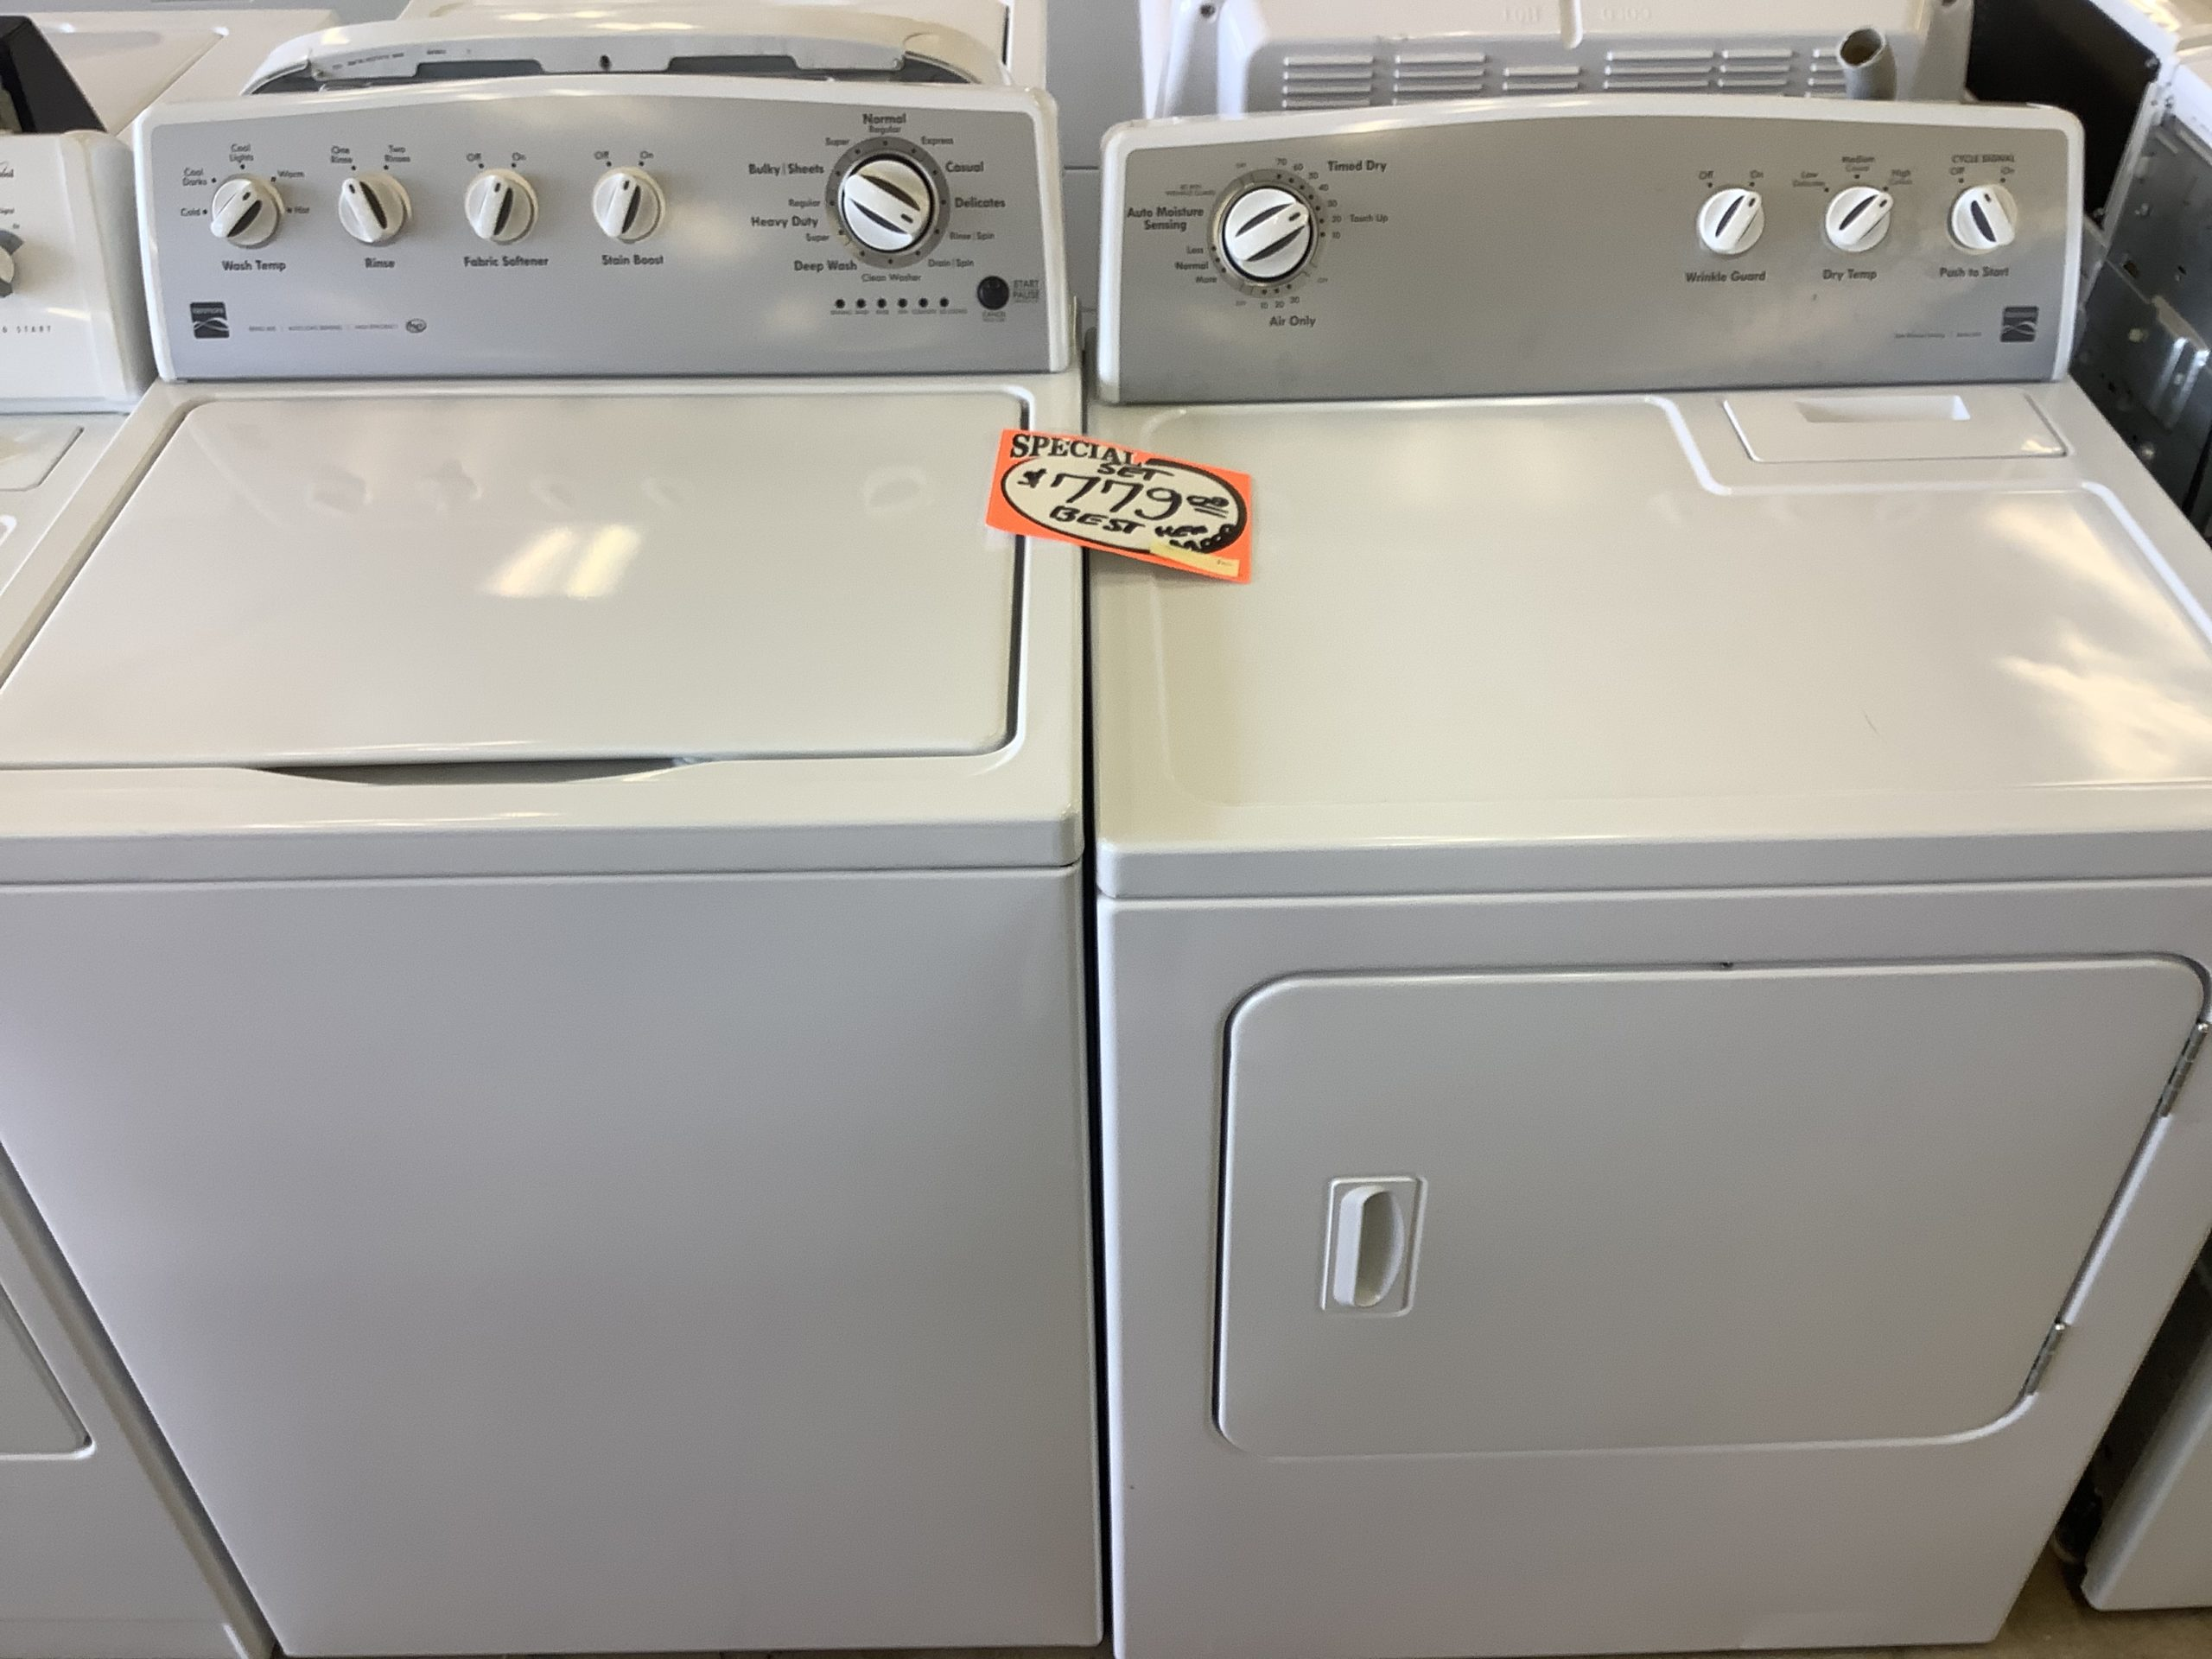 Kenmore washer and dryer set - USED